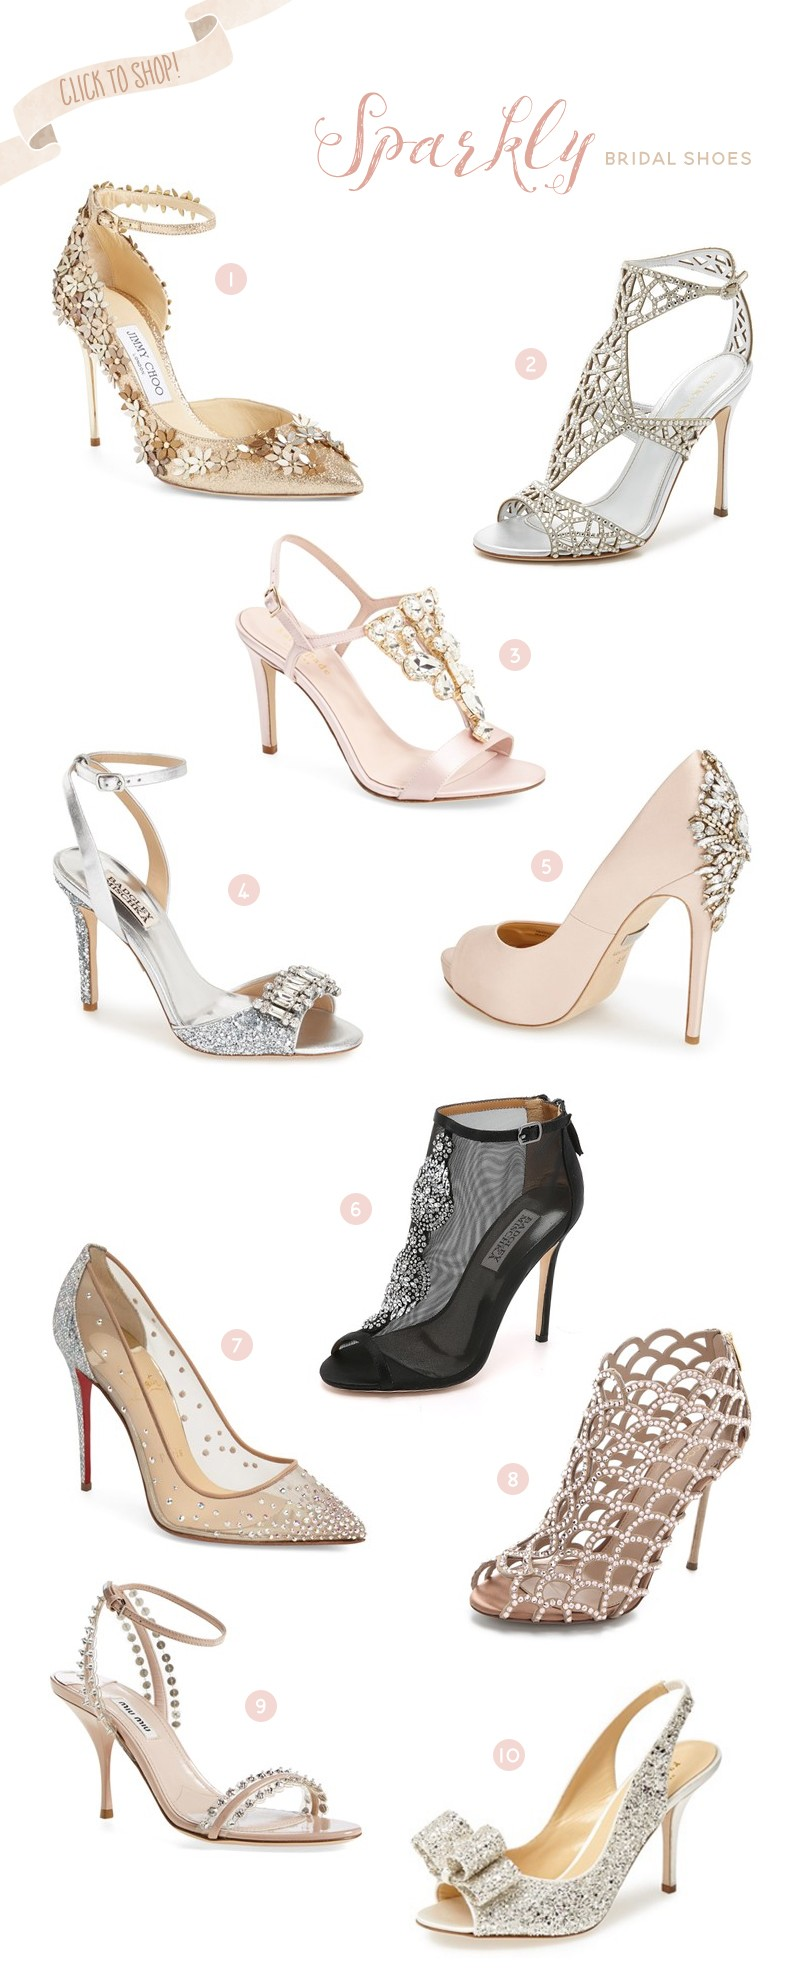 4050937e6d3 Shopping Guide  1.Jimmy Choo  Lorelai  Floral Embellished Ankle Strap Pump